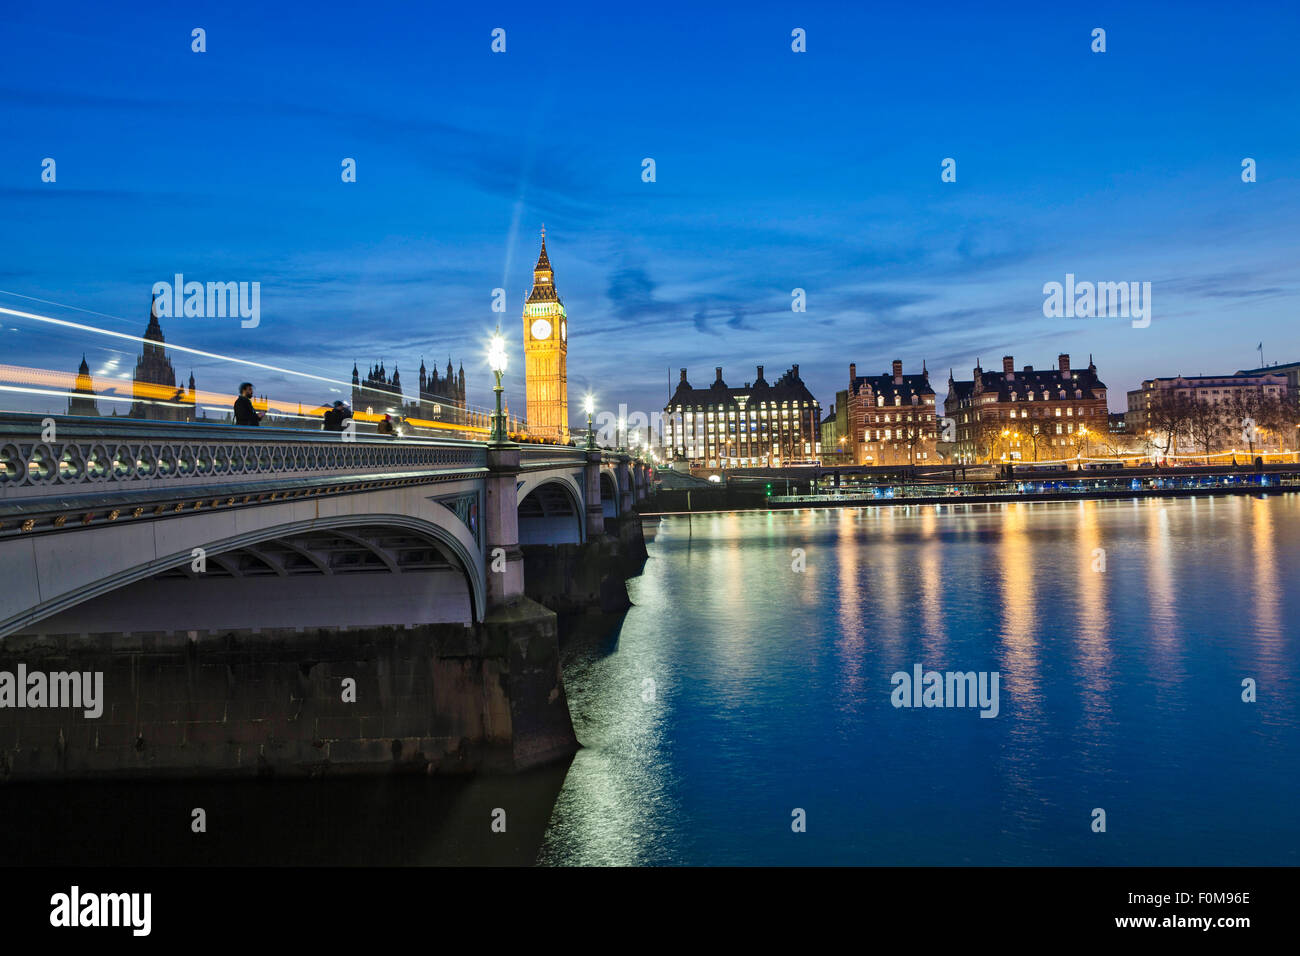 Westminster Bridge and the Houses of Parliament at night time - Stock Image